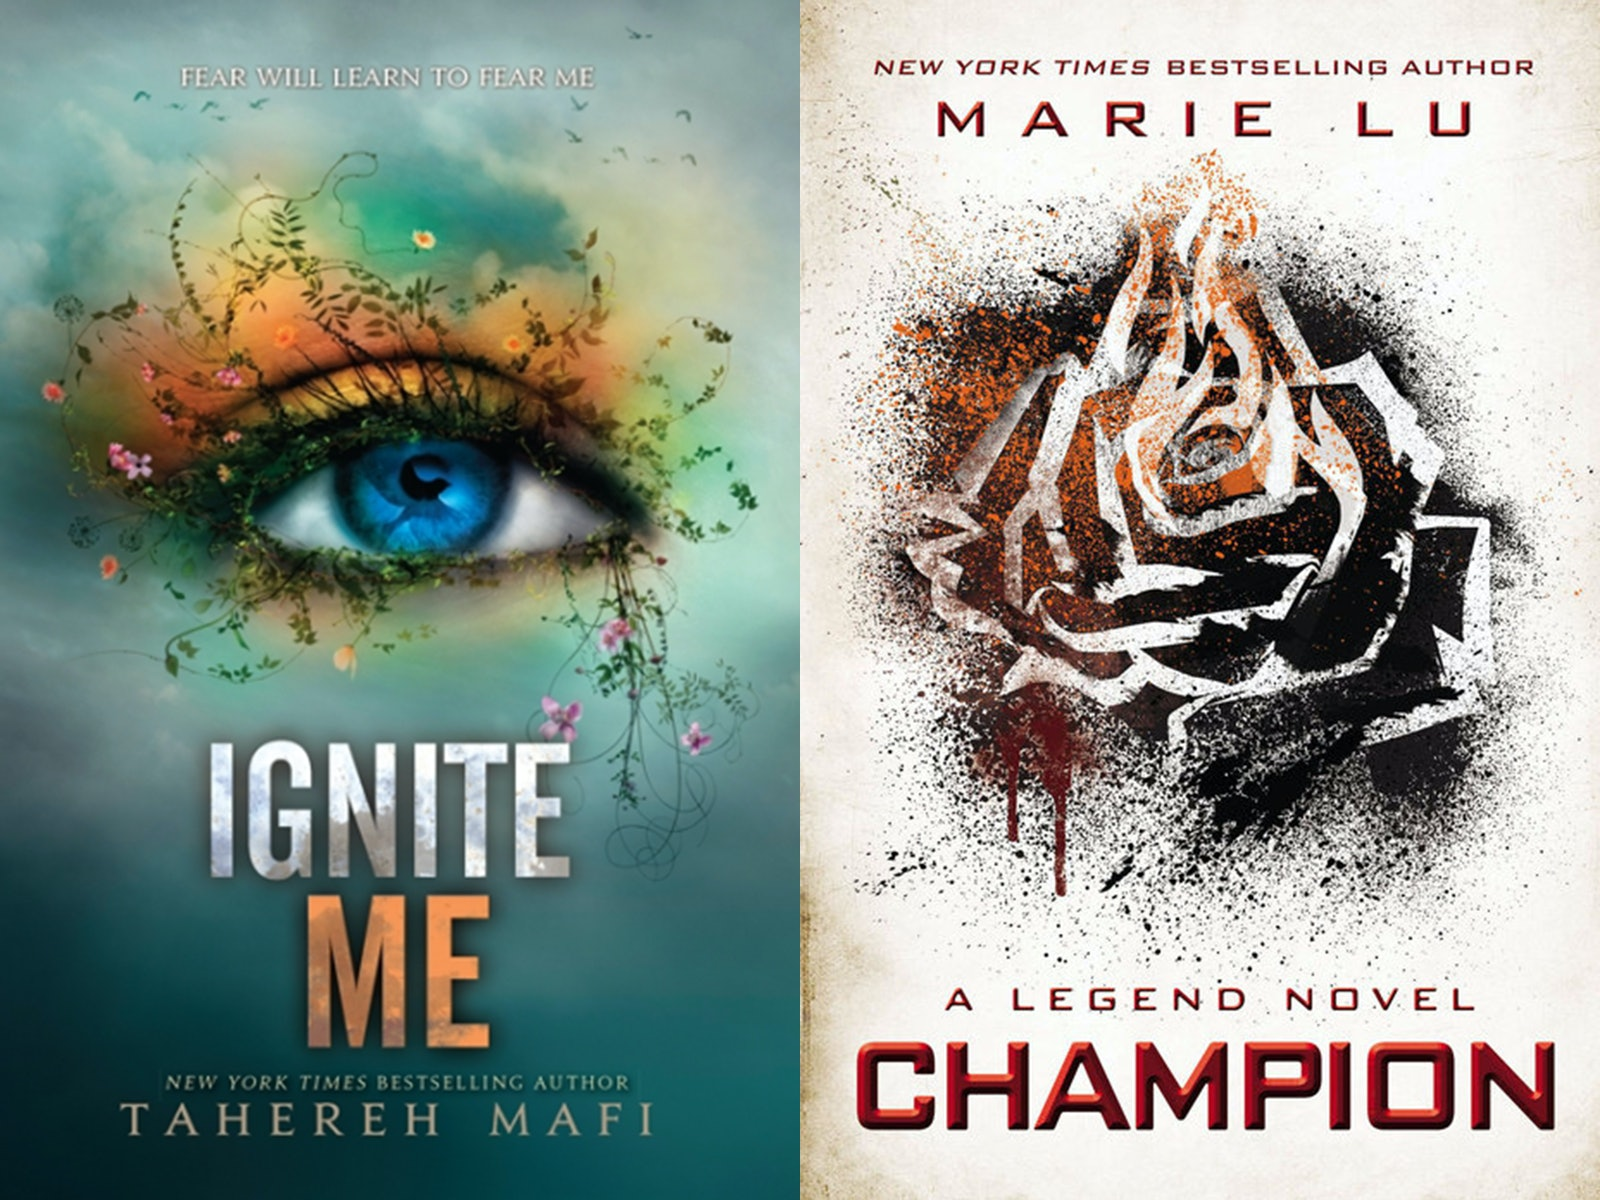 17 YA Dystopian Novels To Explore If You Want An